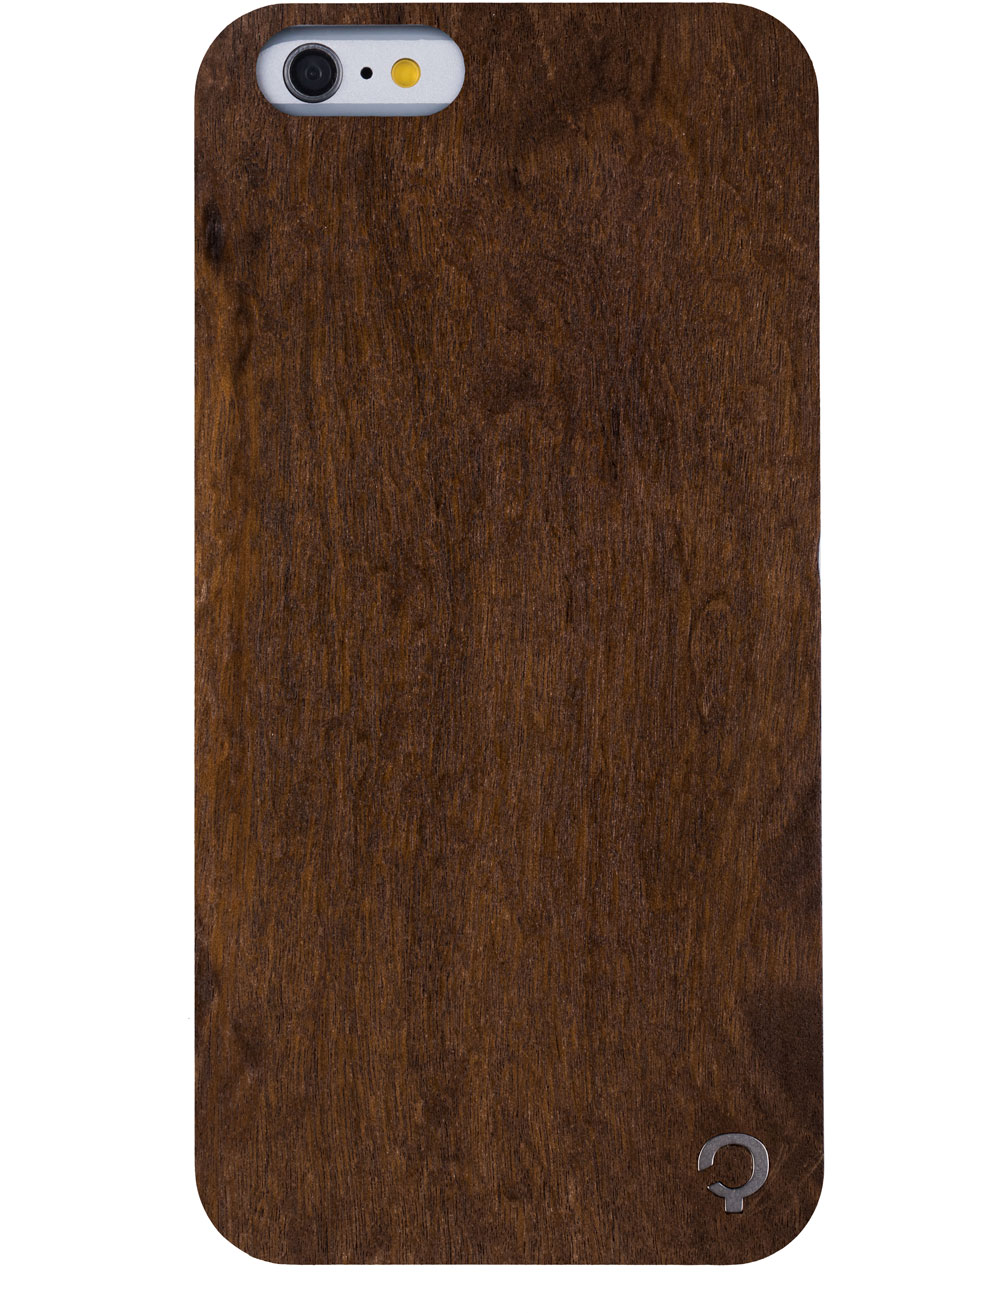 Wooden-case-iPhone-6-plus-Premium-Imbuia